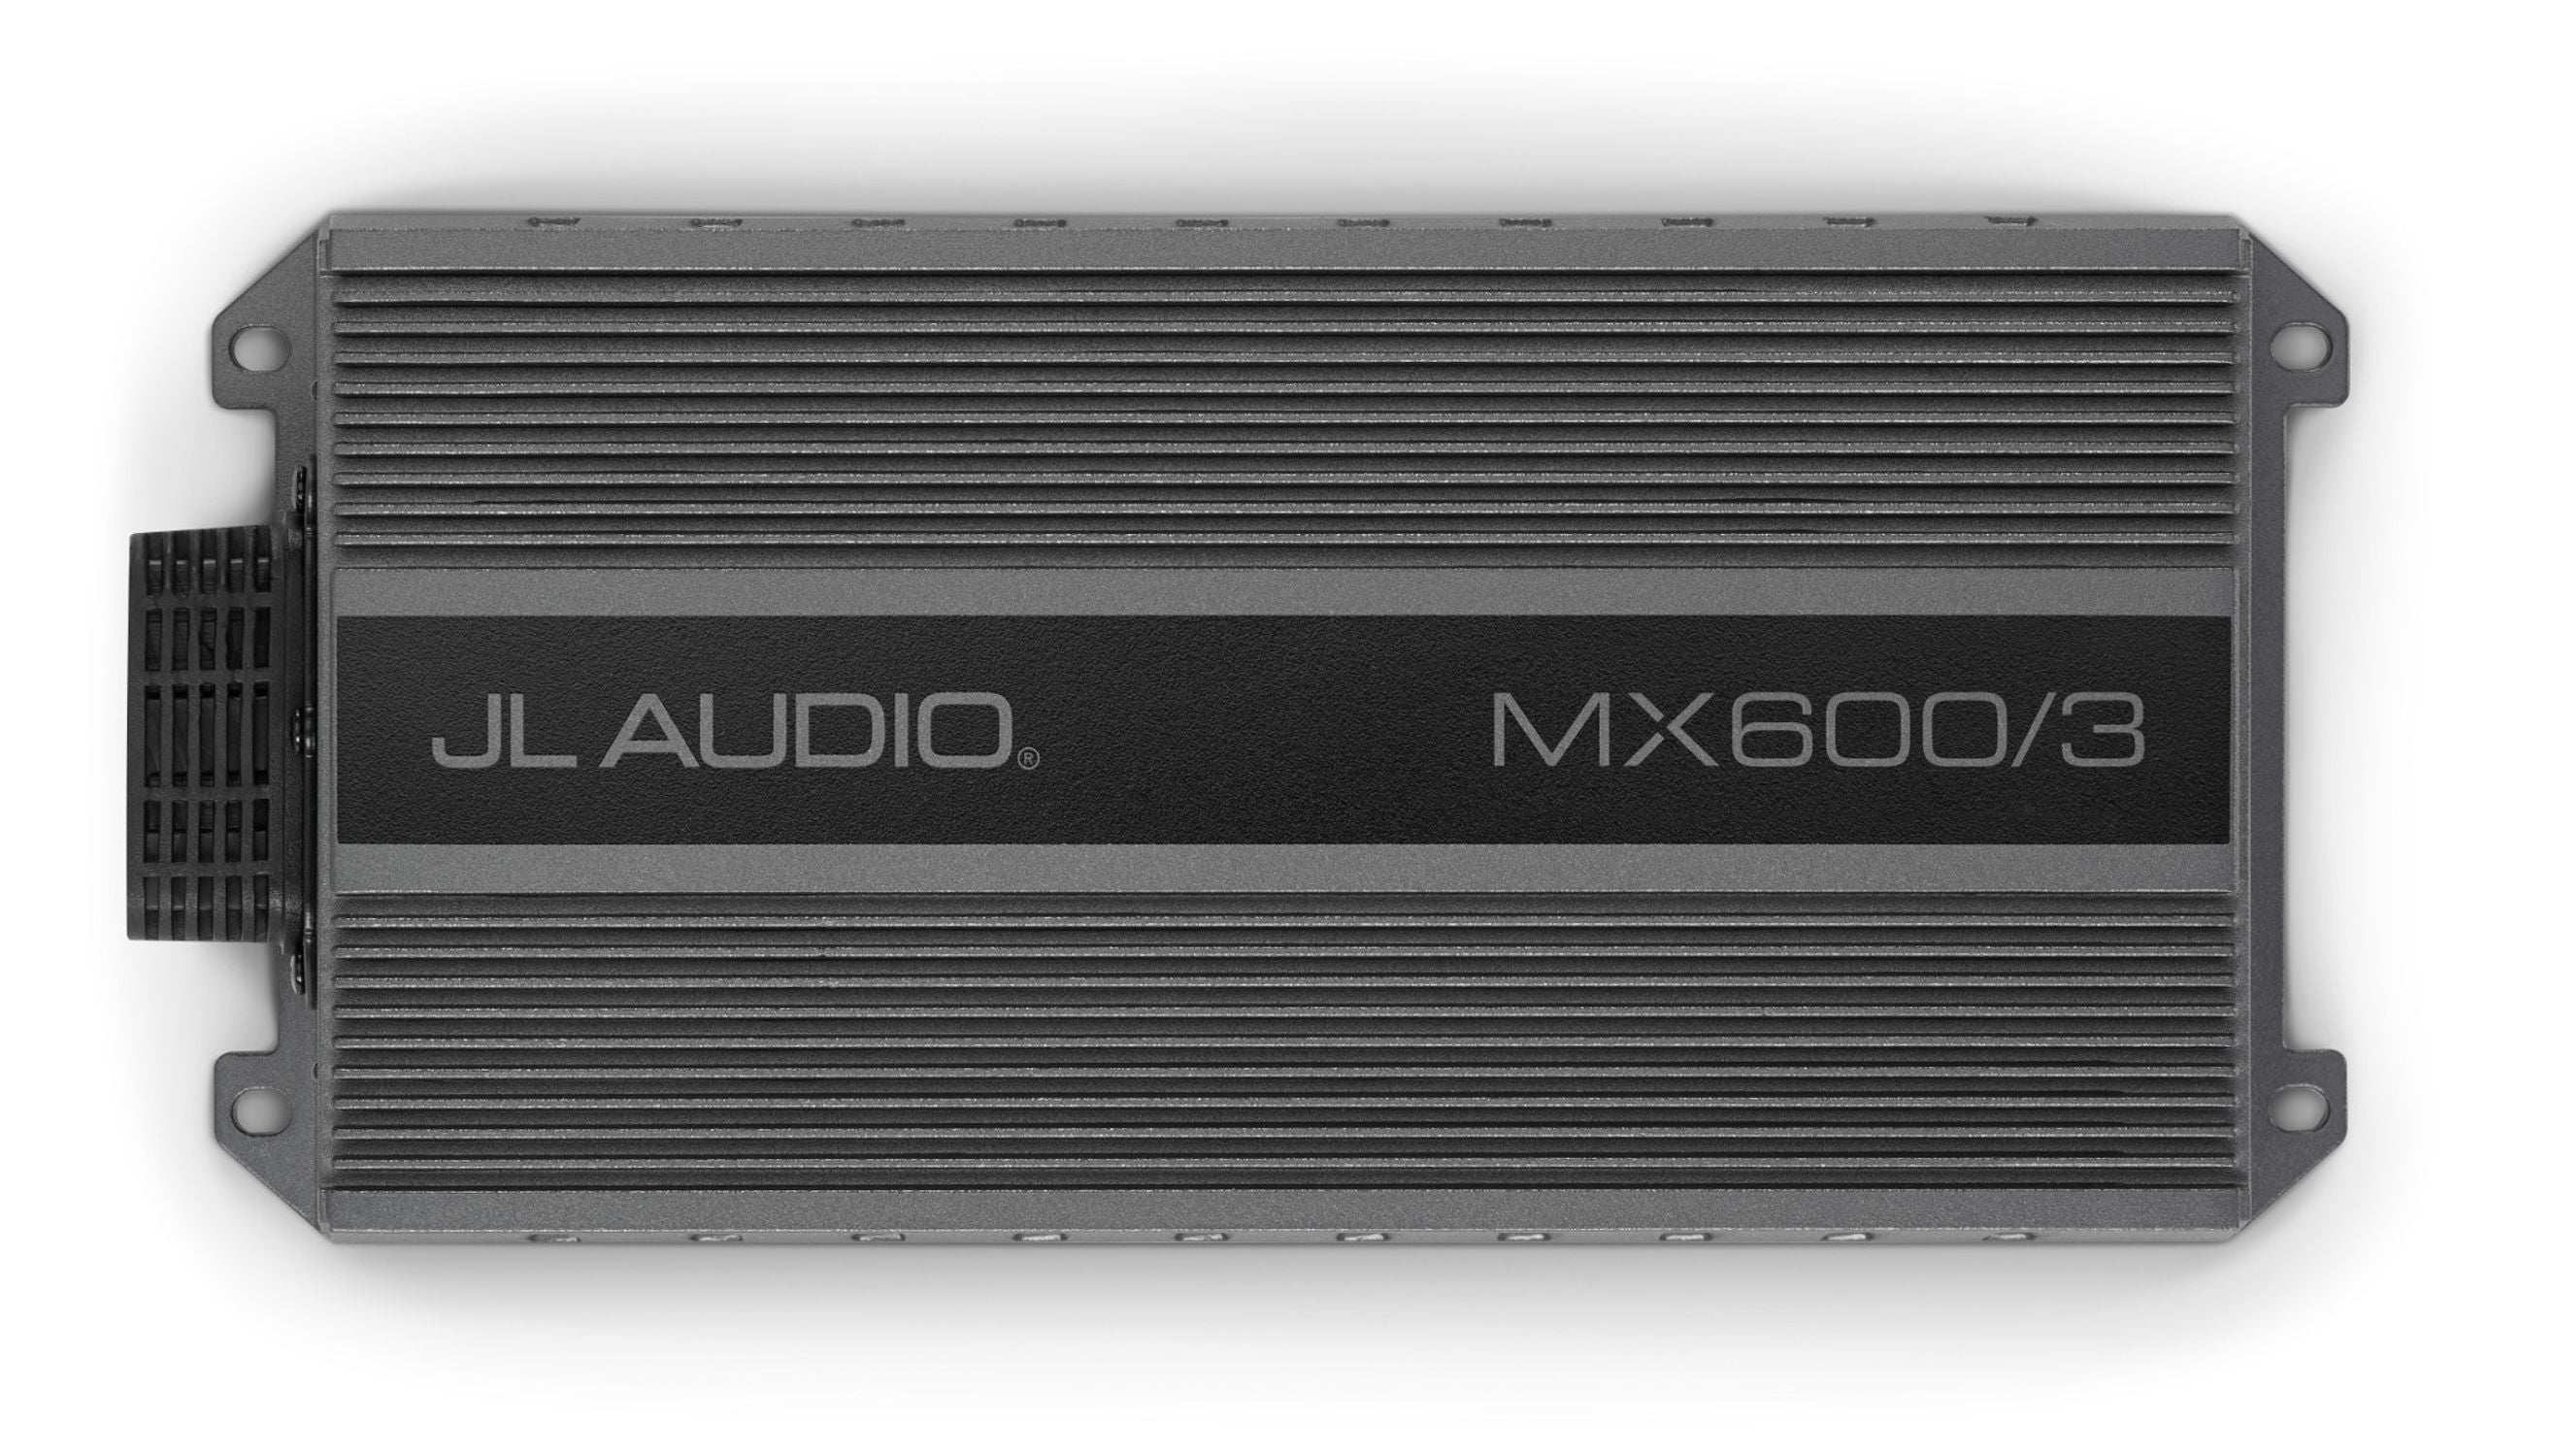 Front Overhead of MX600/3 Amplifier